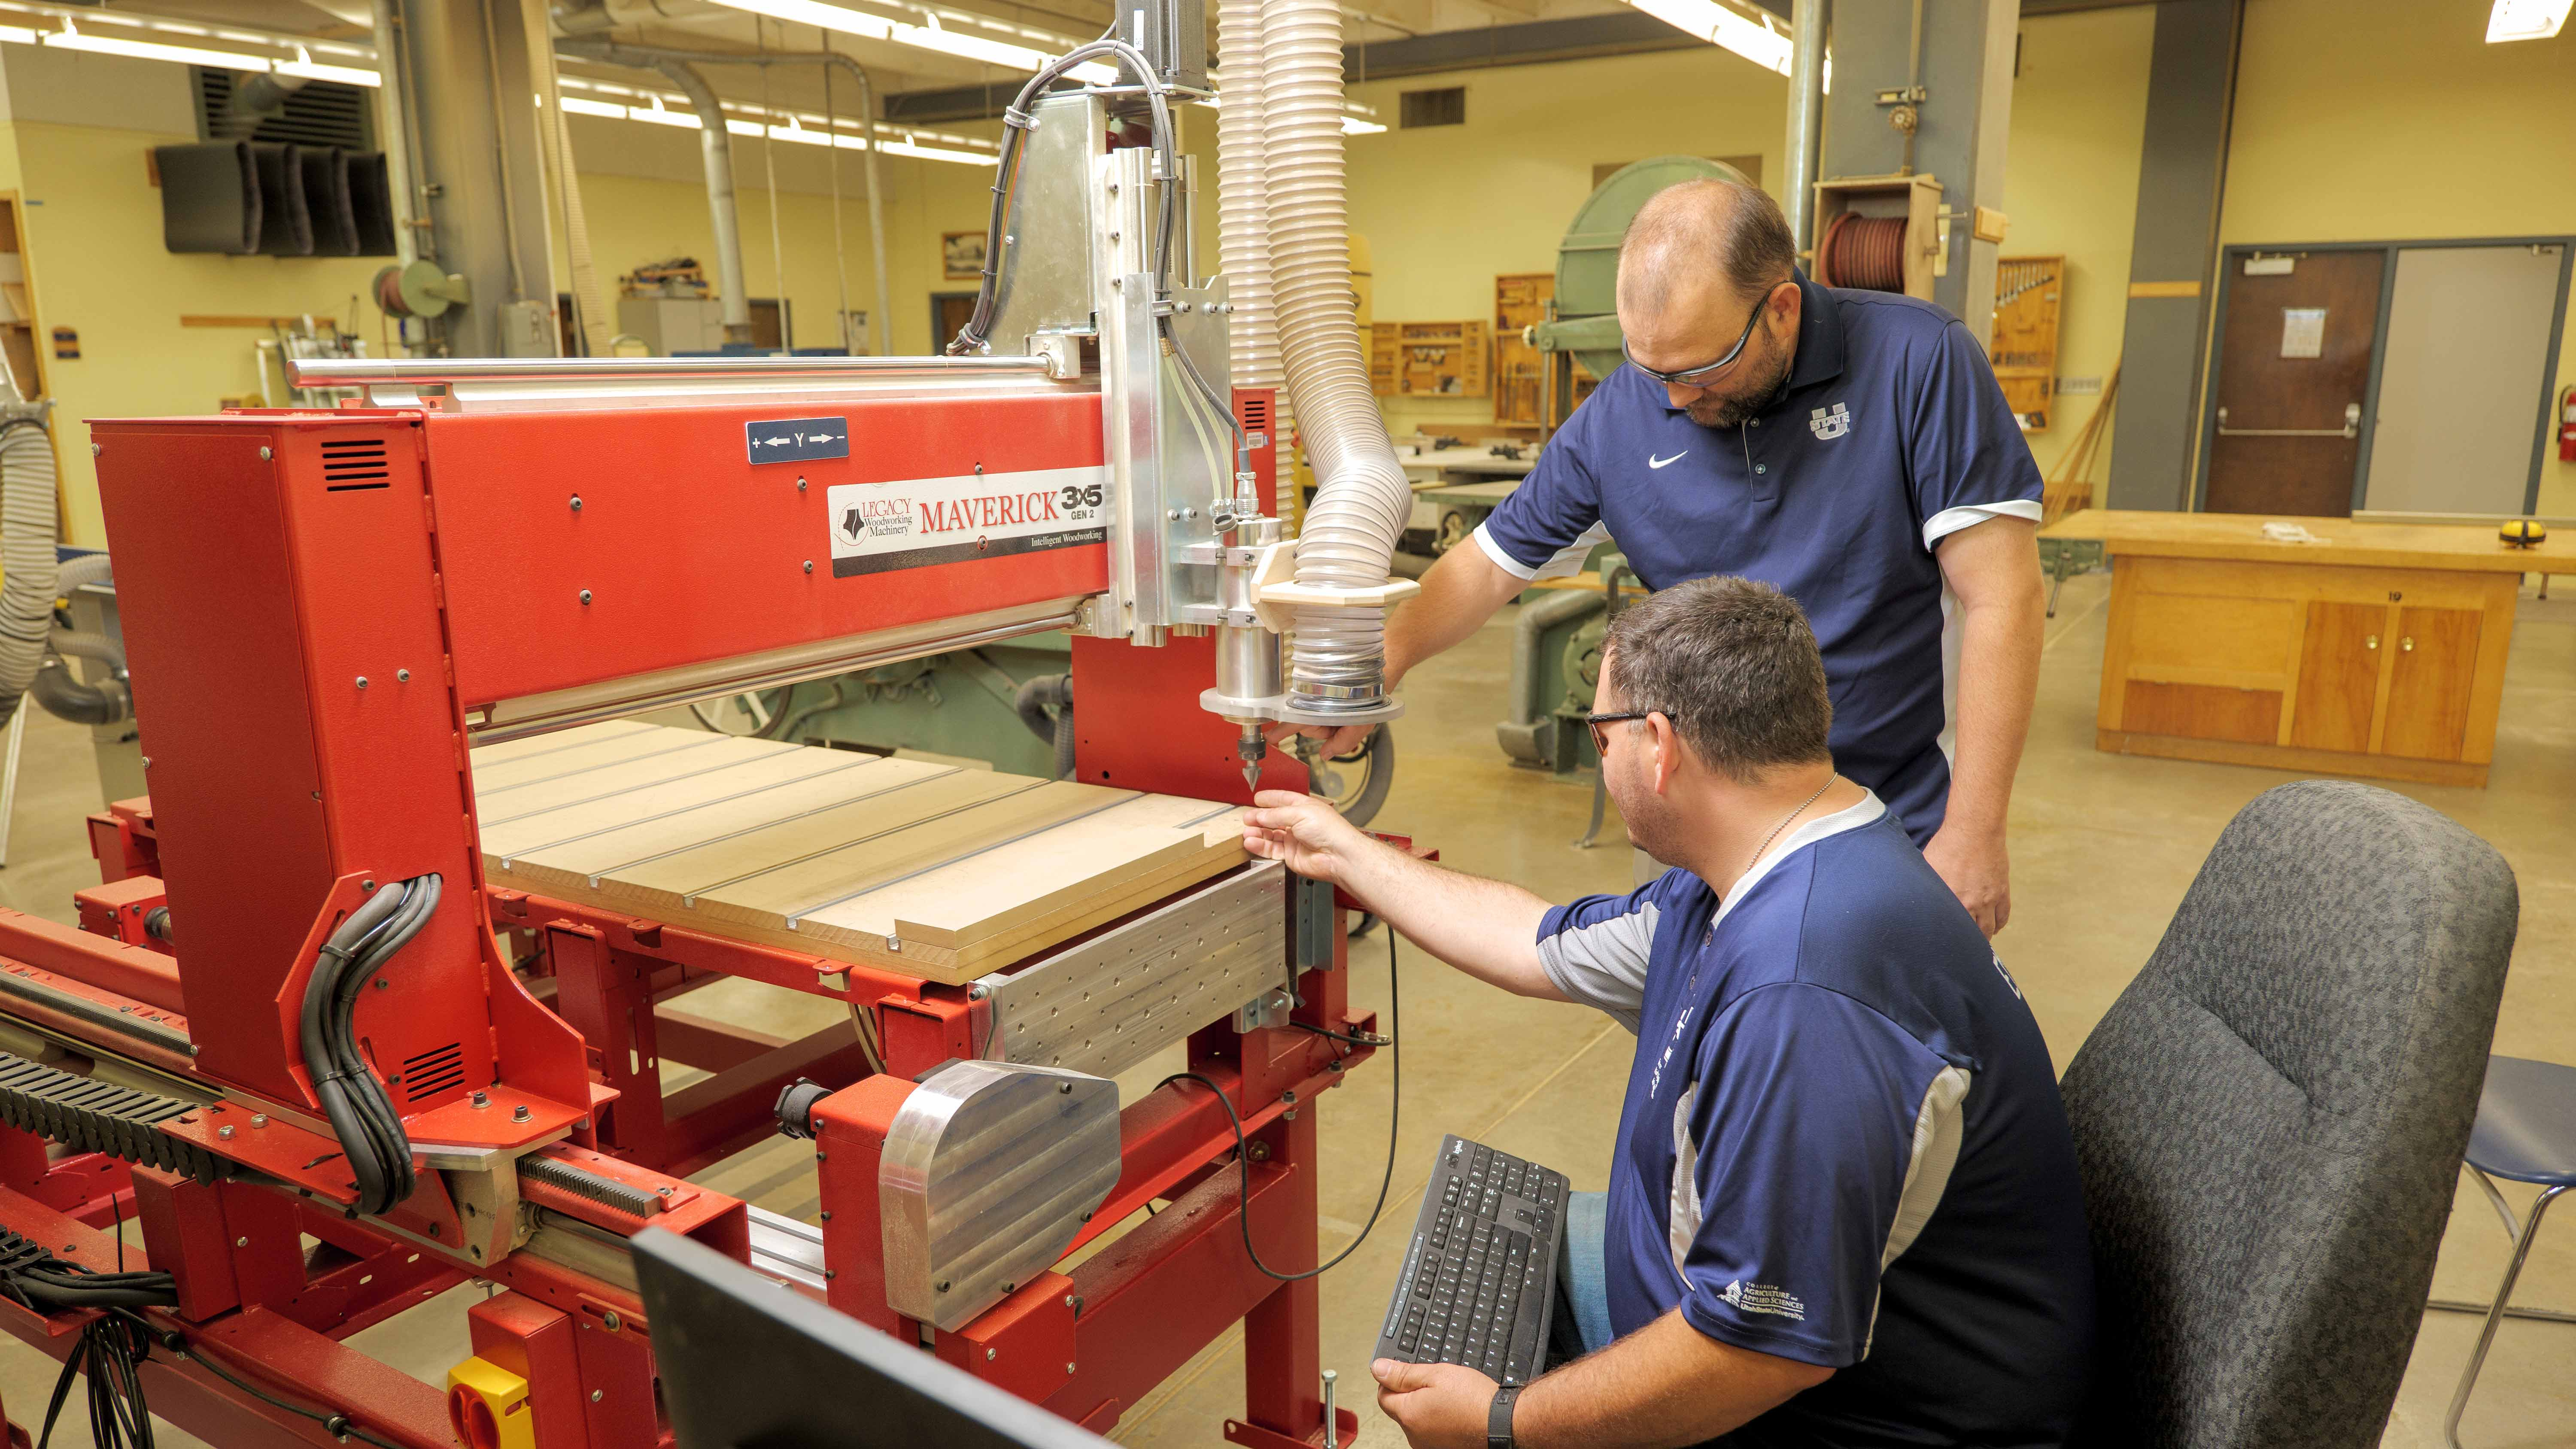 Technology Systems student and professor working at the CNC router in the woods lab.